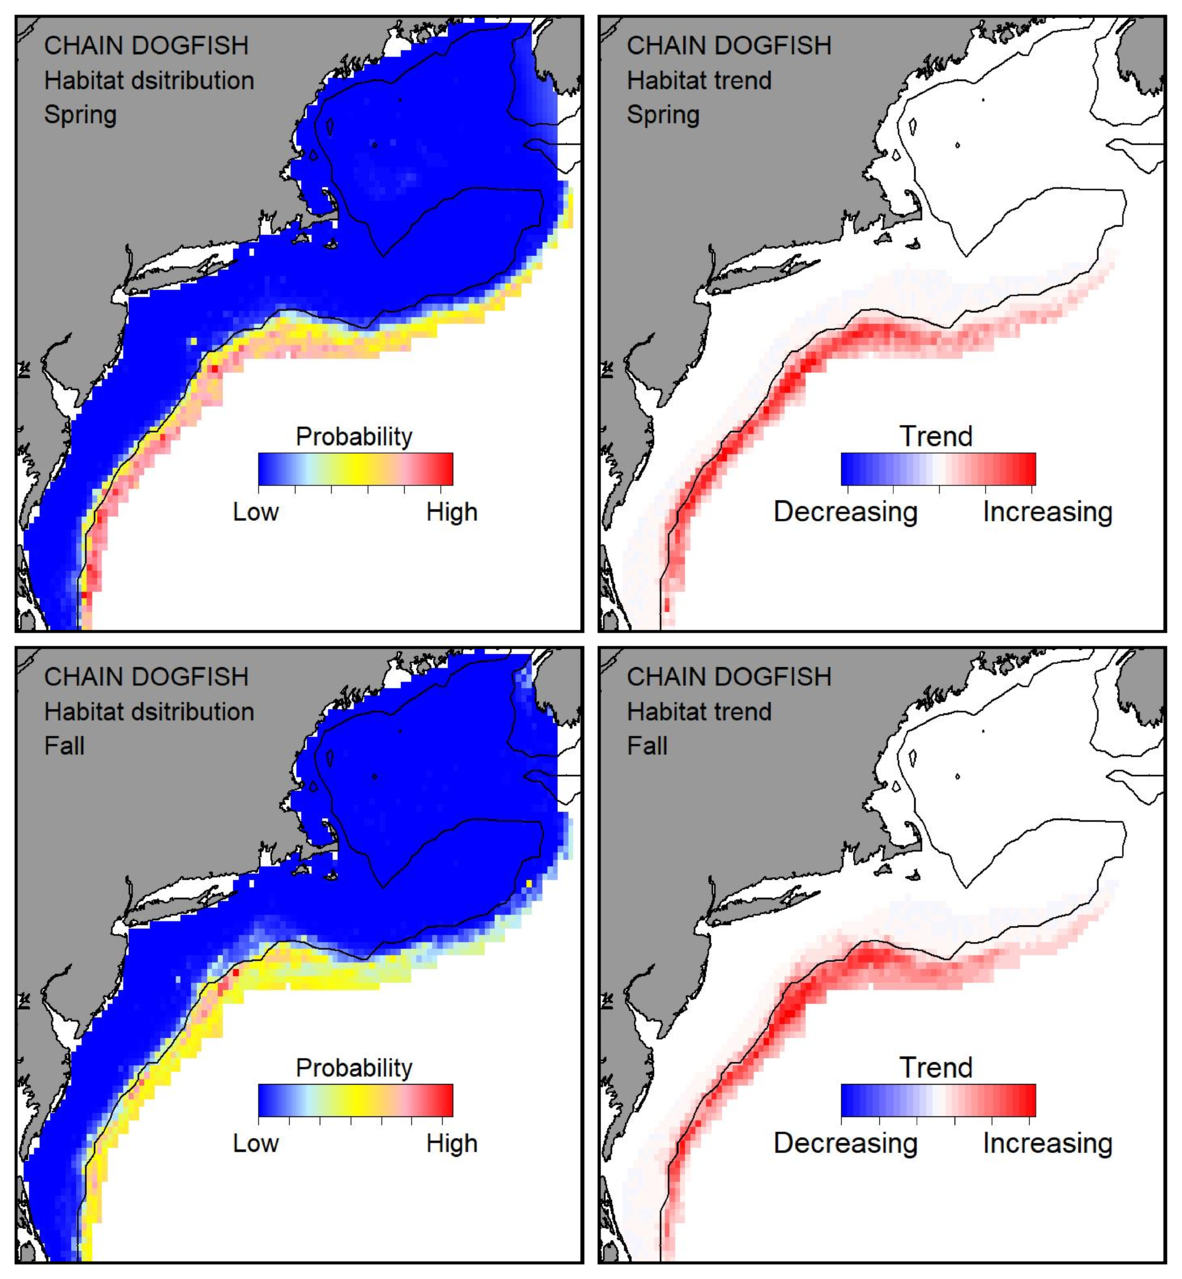 Top row: Probable habitat distribution for chain dogfish showing the highest concentration and increasing trend in the Gulf of Maine during the spring. Bottom row: Probable habitat distribution for chain dogfish showing the highest concentration and increasing trend in the Gulf of Maine during the fall.